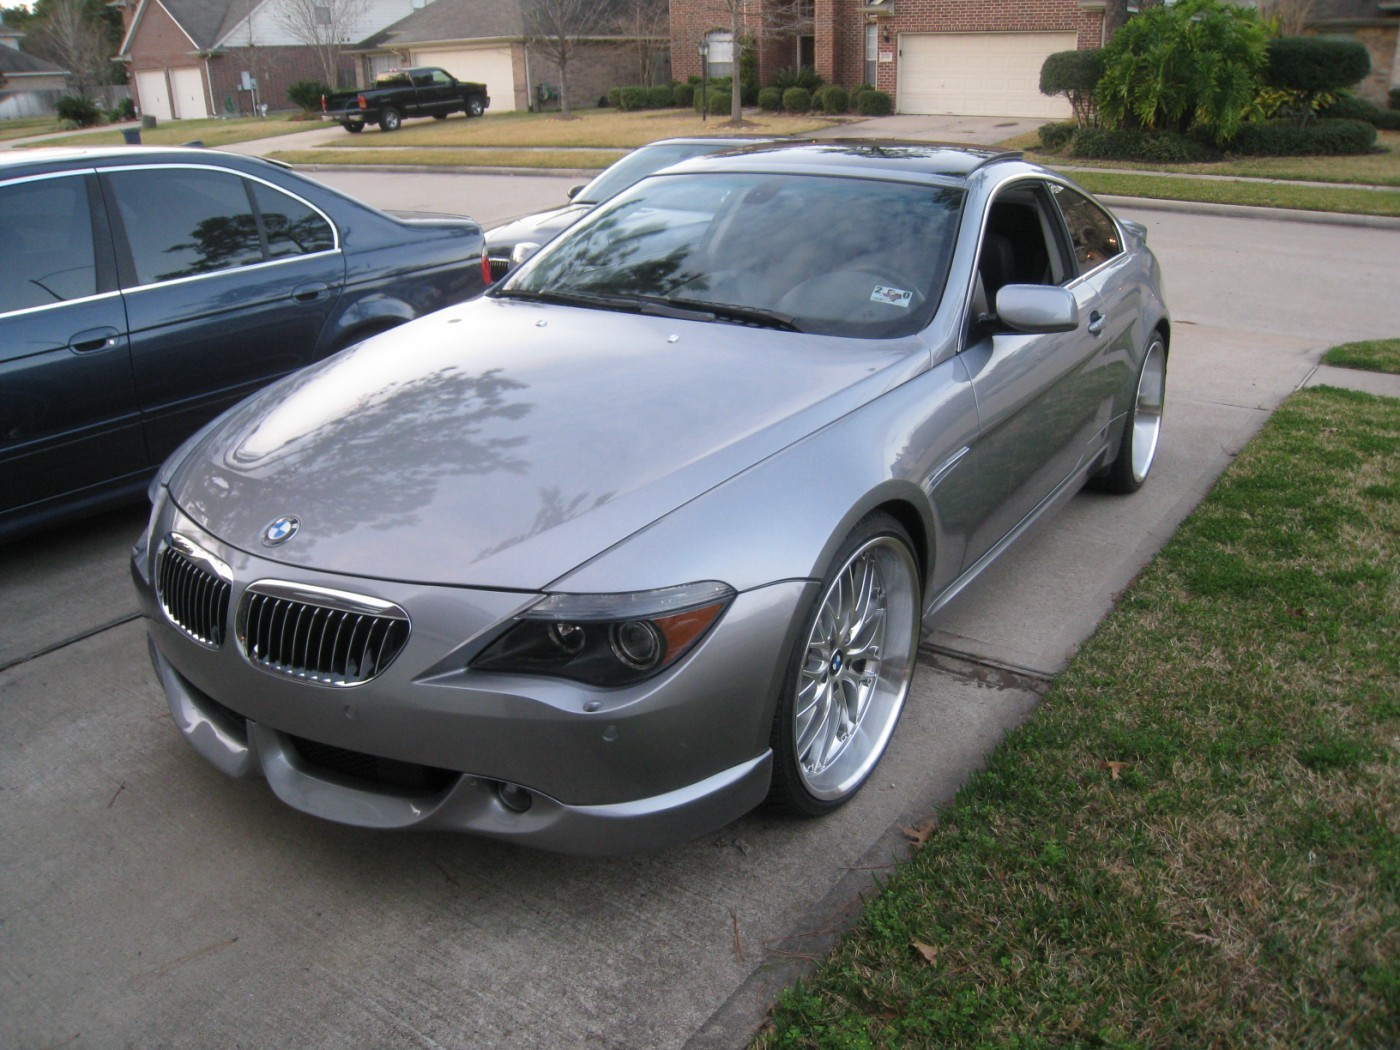 bimmercoholic 2005 bmw 6 series specs photos modification info at cardomain. Black Bedroom Furniture Sets. Home Design Ideas